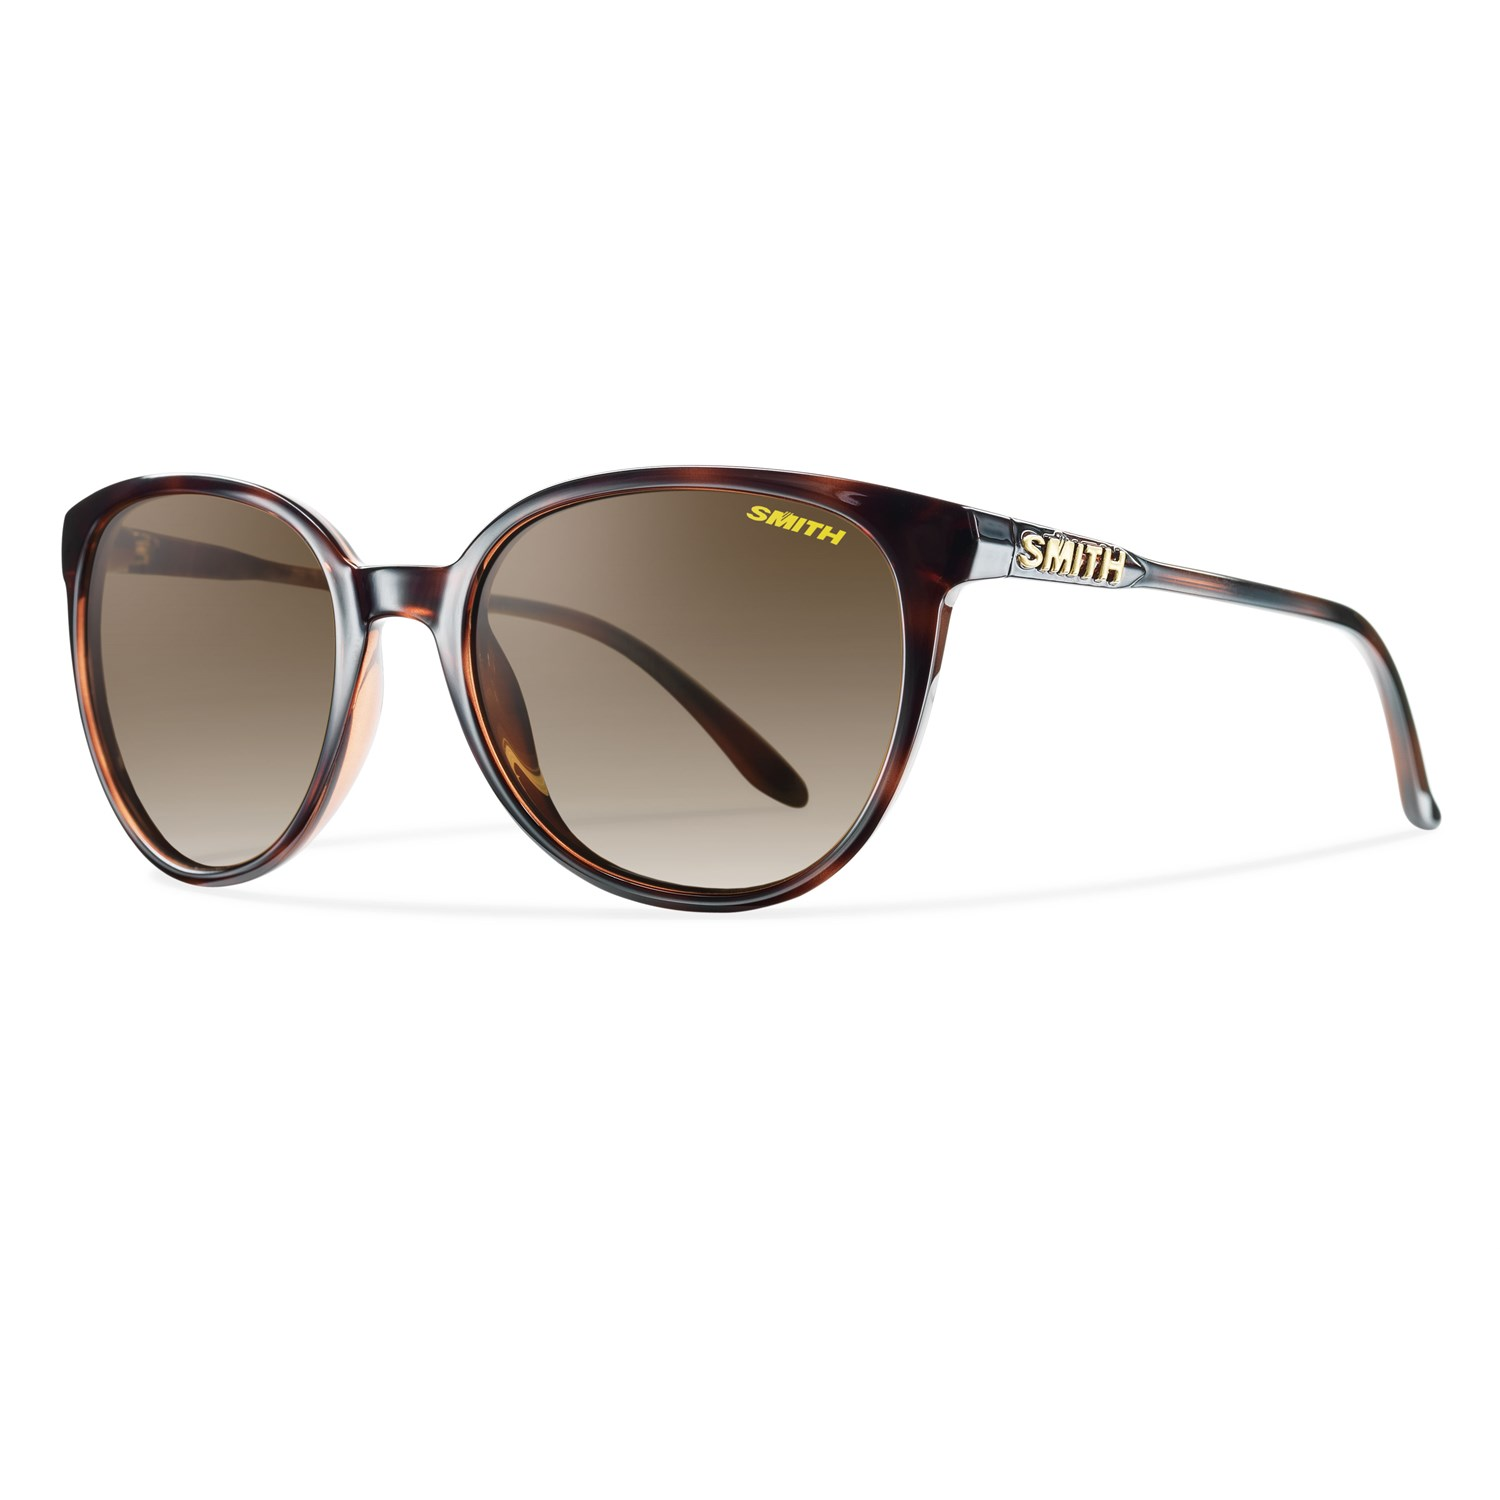 e4010ffeac6 Smith Cheetah Sunglasses - Women s